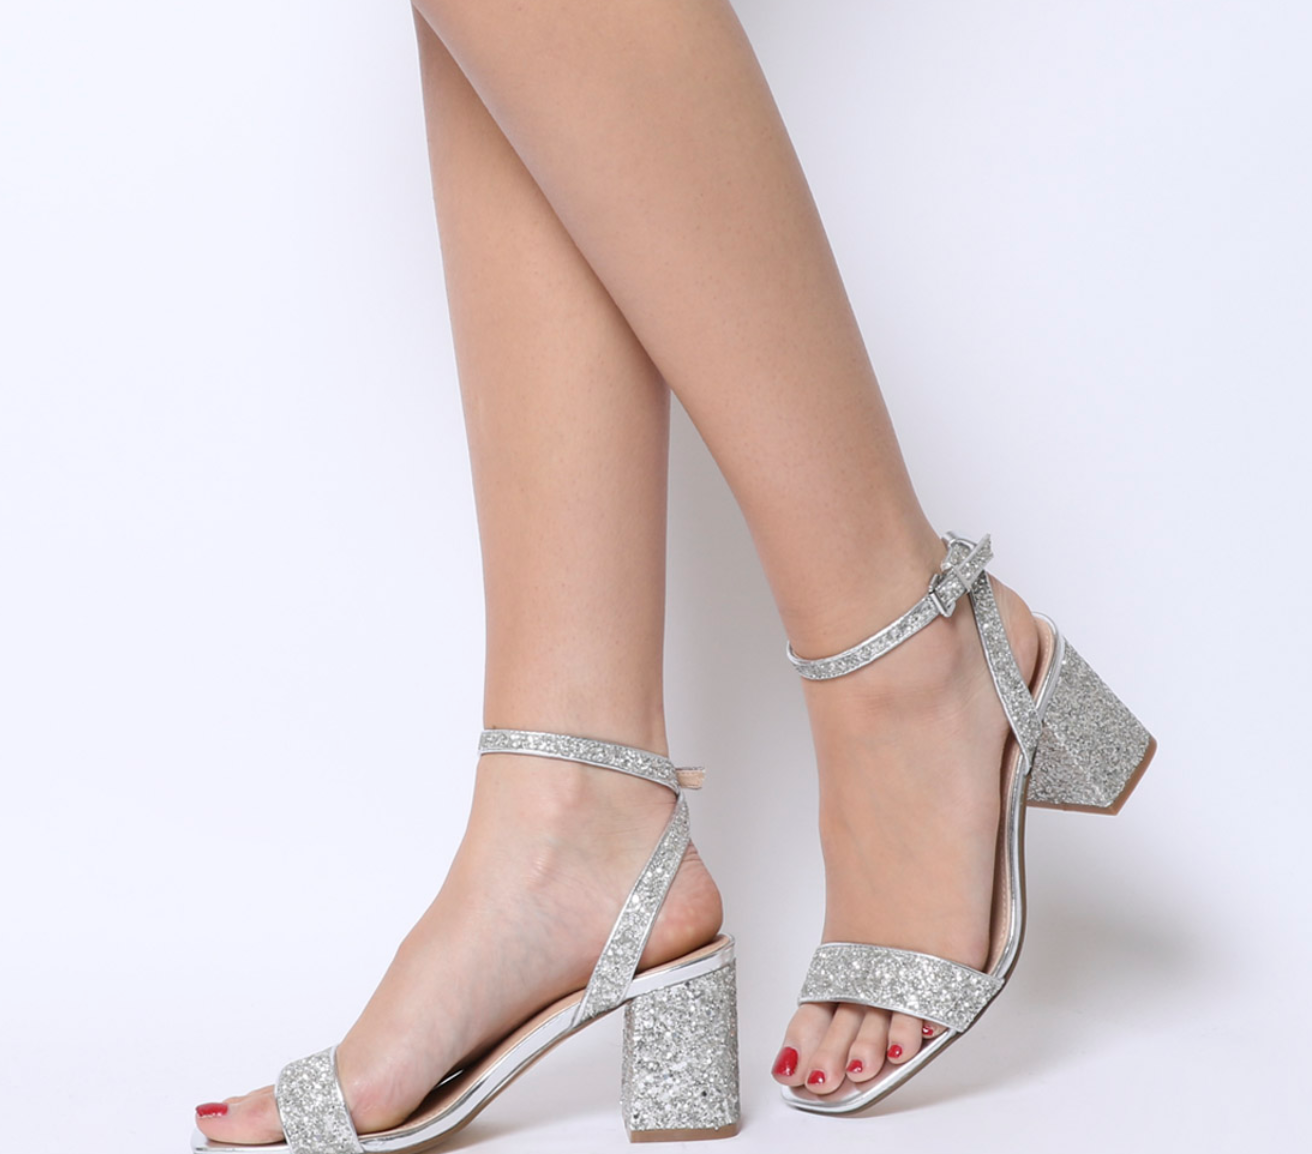 Millions Square Toe Two Part HeelsSilver Glitter - shop them here